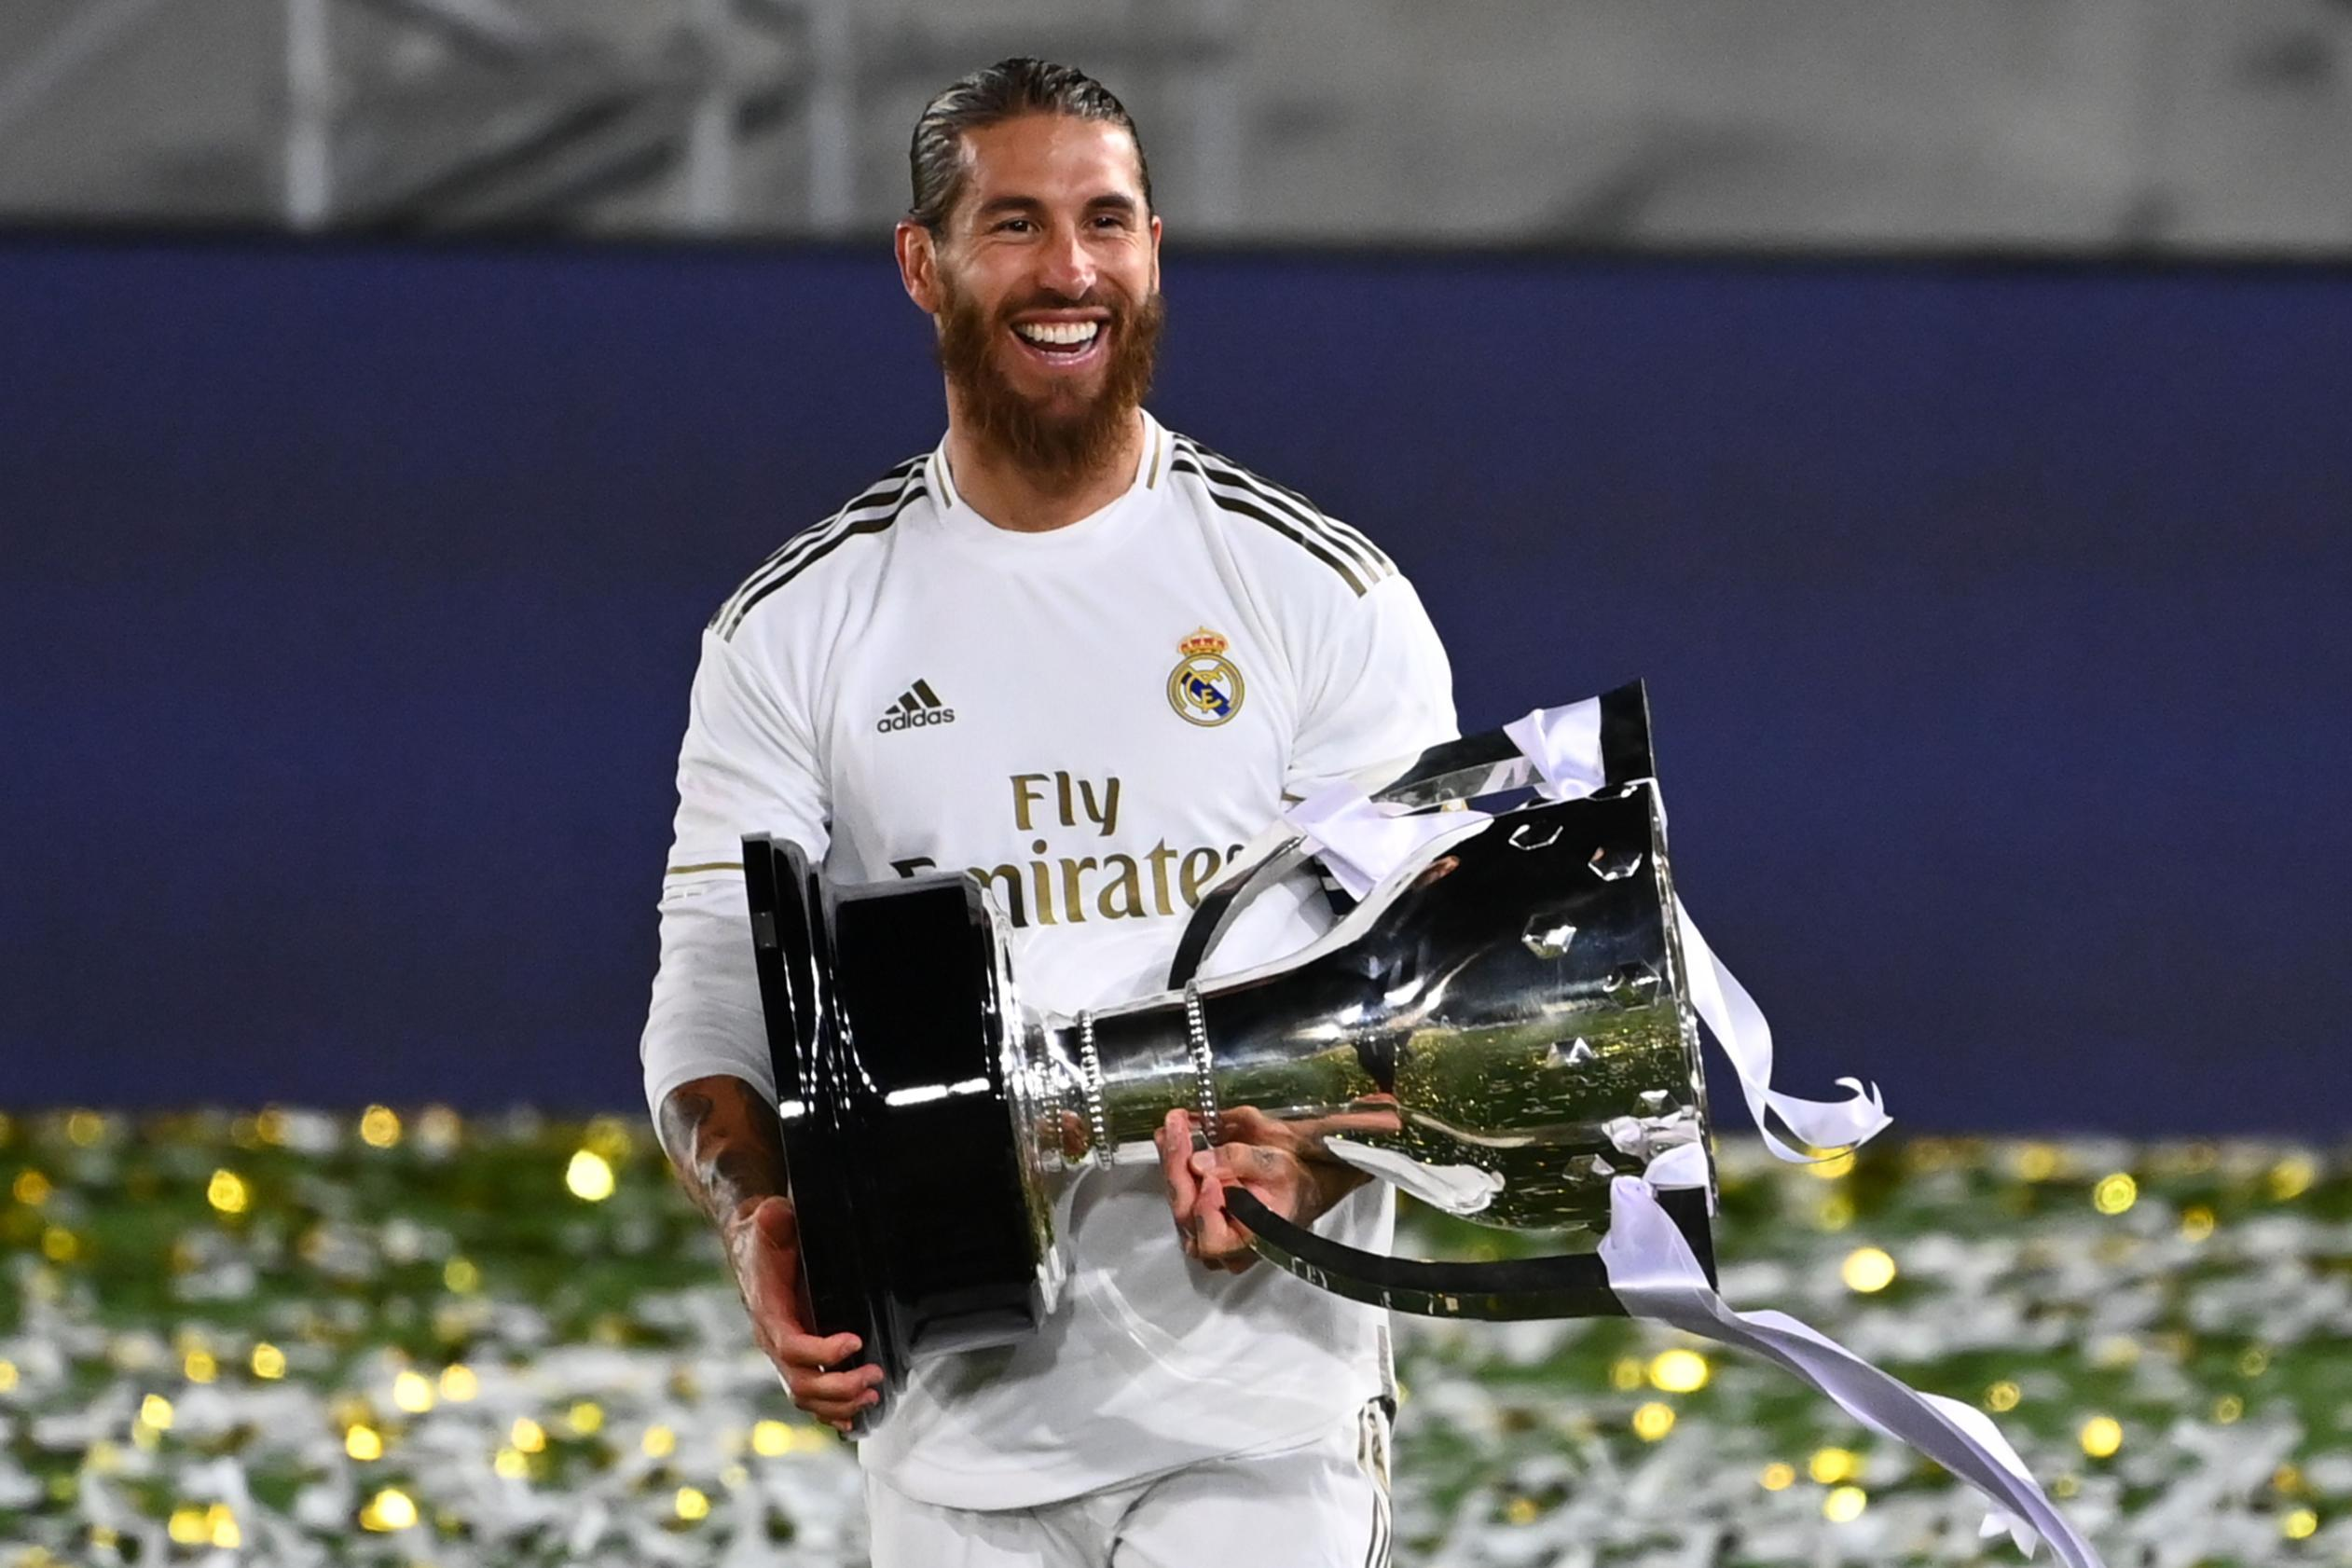 Sergio Ramos to leave Real Madrid after 16 years